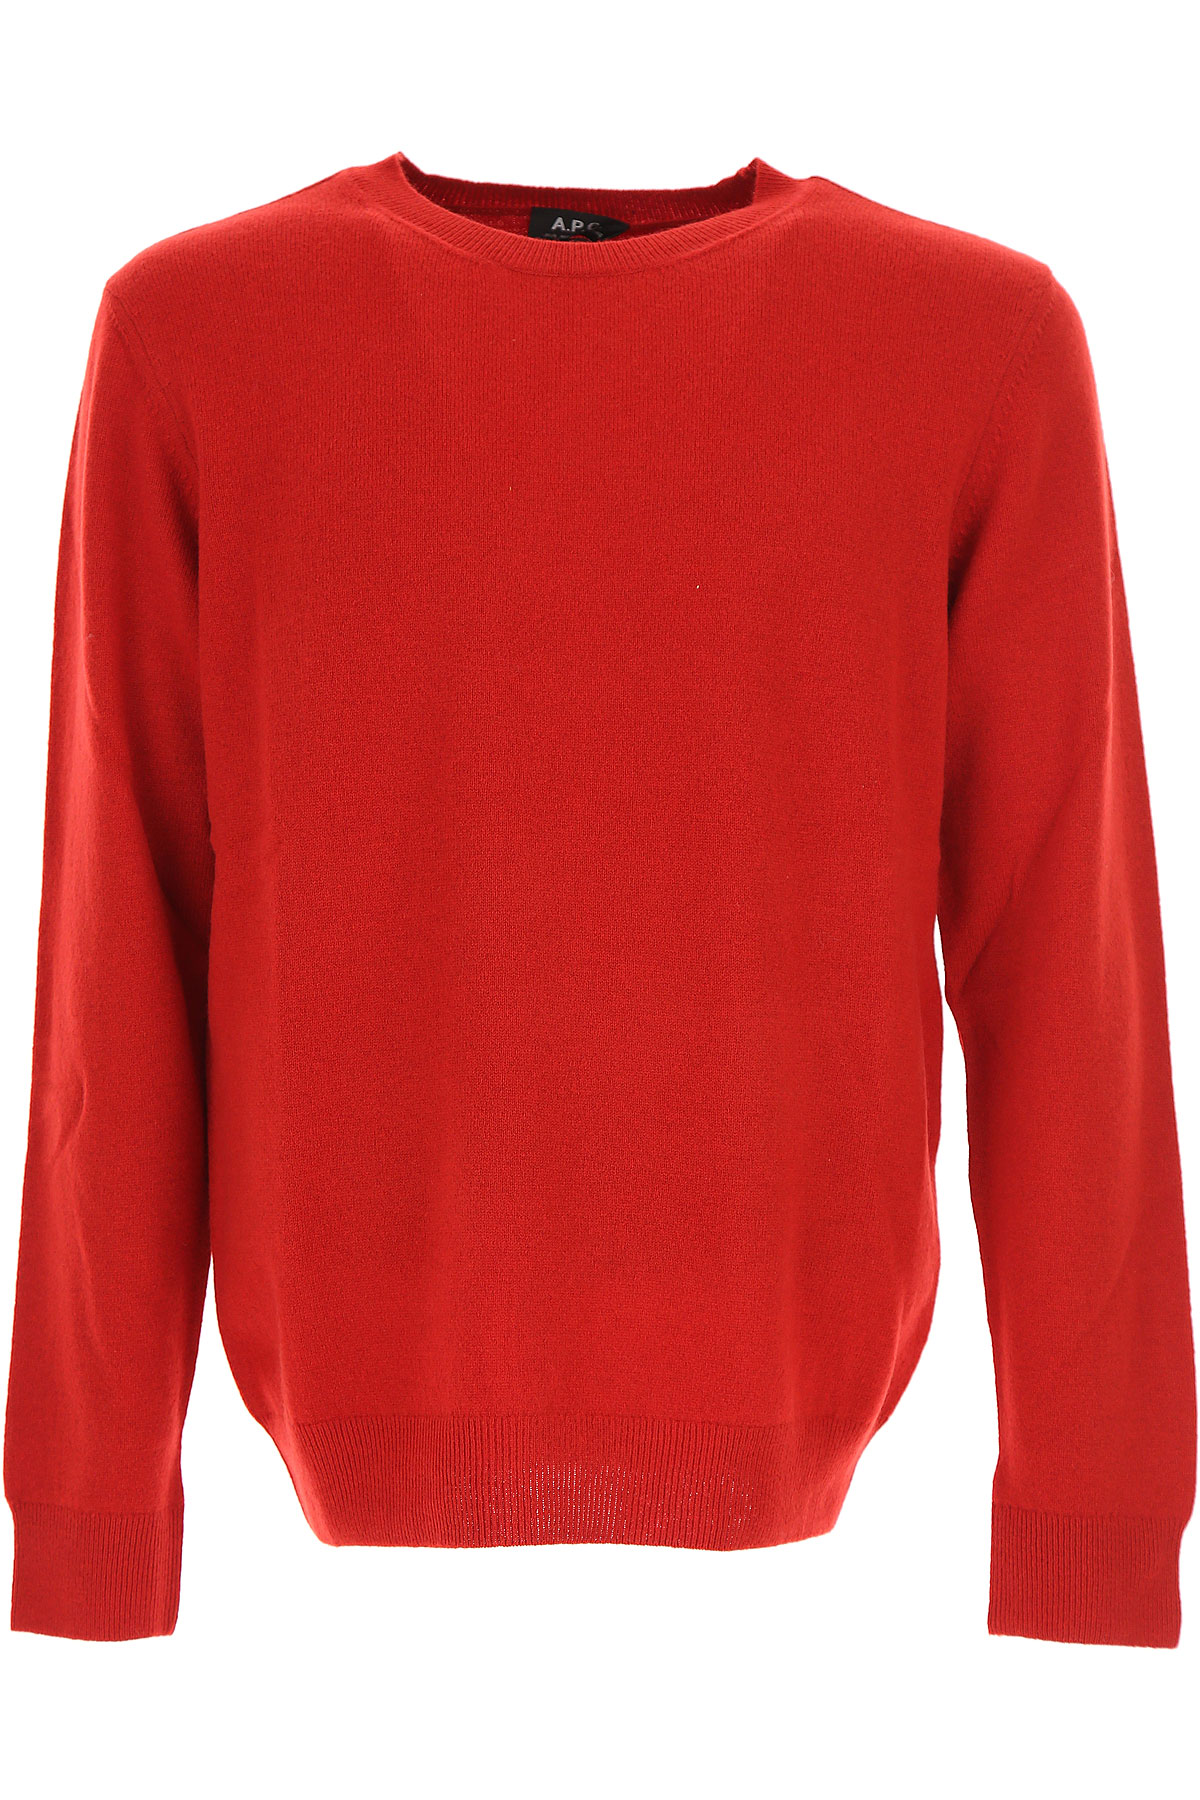 Image of A.P.C Sweater for Men Jumper, Red, Wool, 2017, L M XL